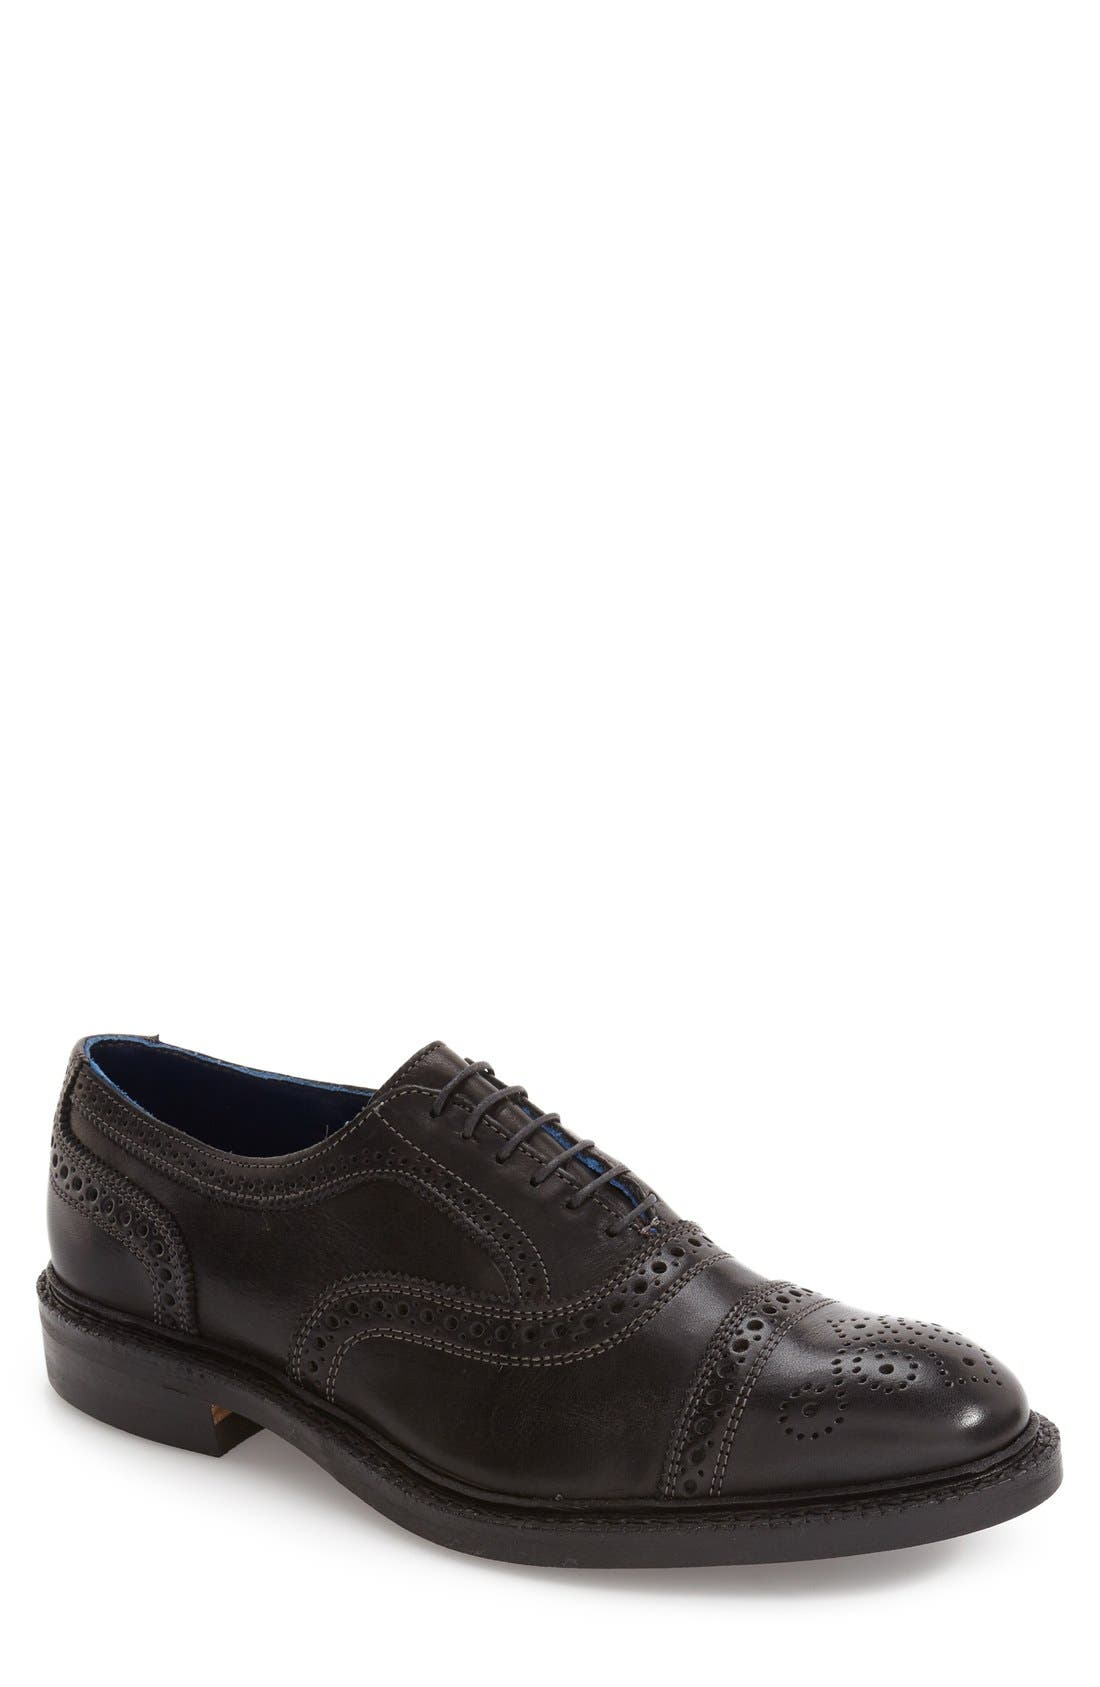 'Strandmok' Cap Toe Oxford,                             Main thumbnail 1, color,                             Black